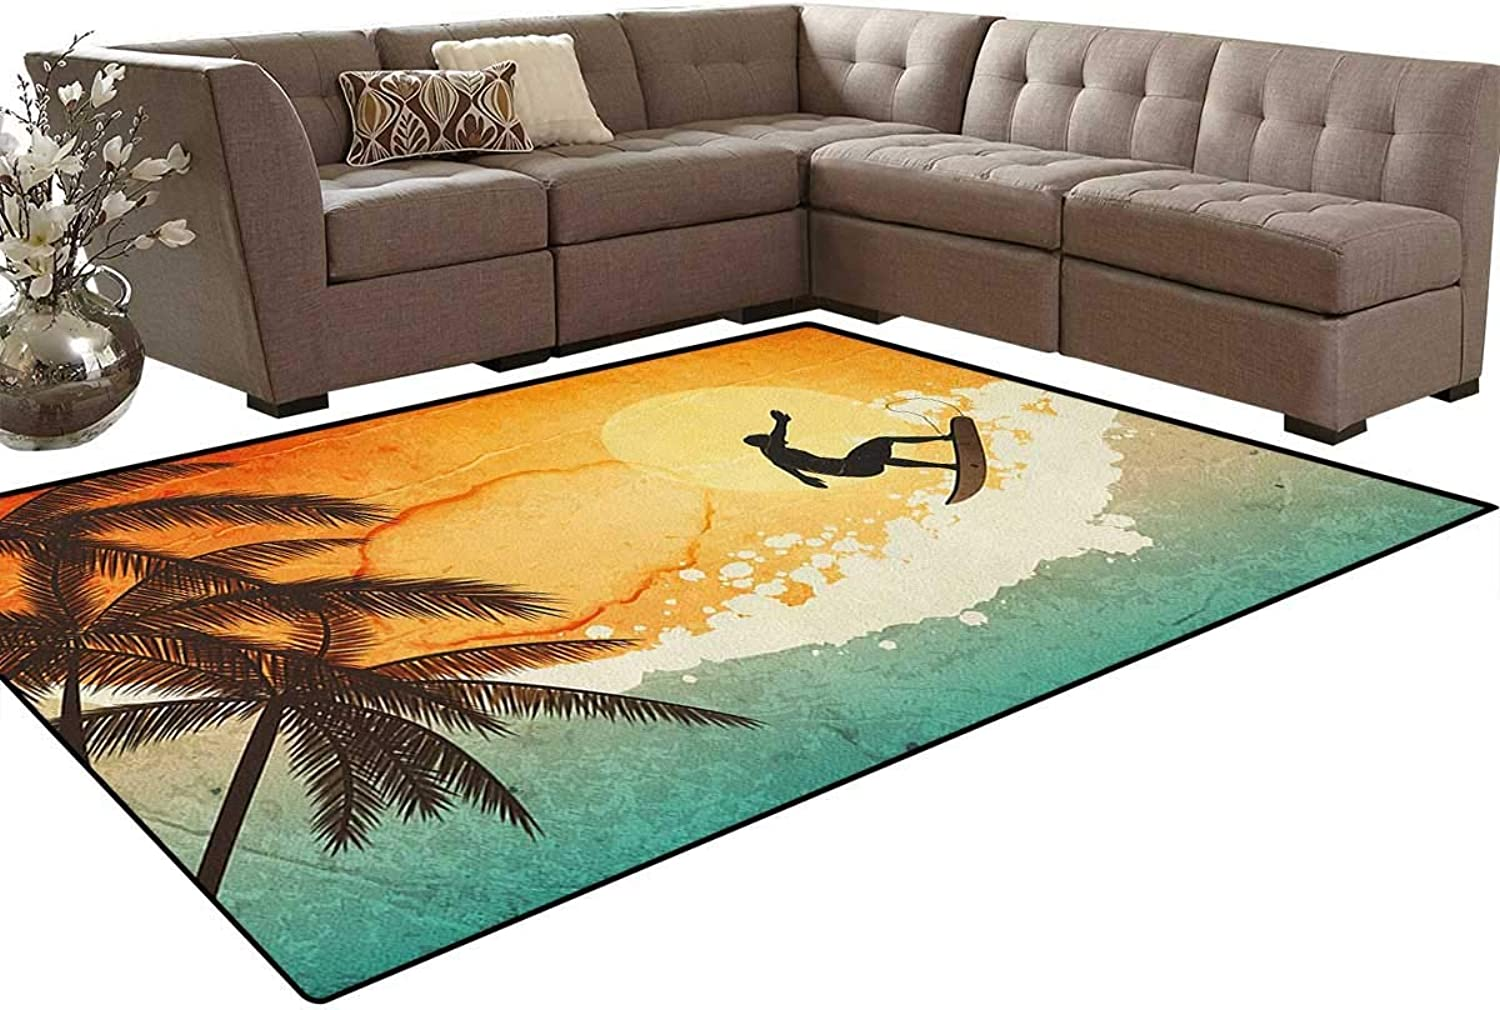 Illustration of Tropical Island Surfer on Sea Waves and Palms at Sunset Floor Mat Rug Indoor Front Door Kitchen and Living Room Bedroom Mats Rubber Non Slip